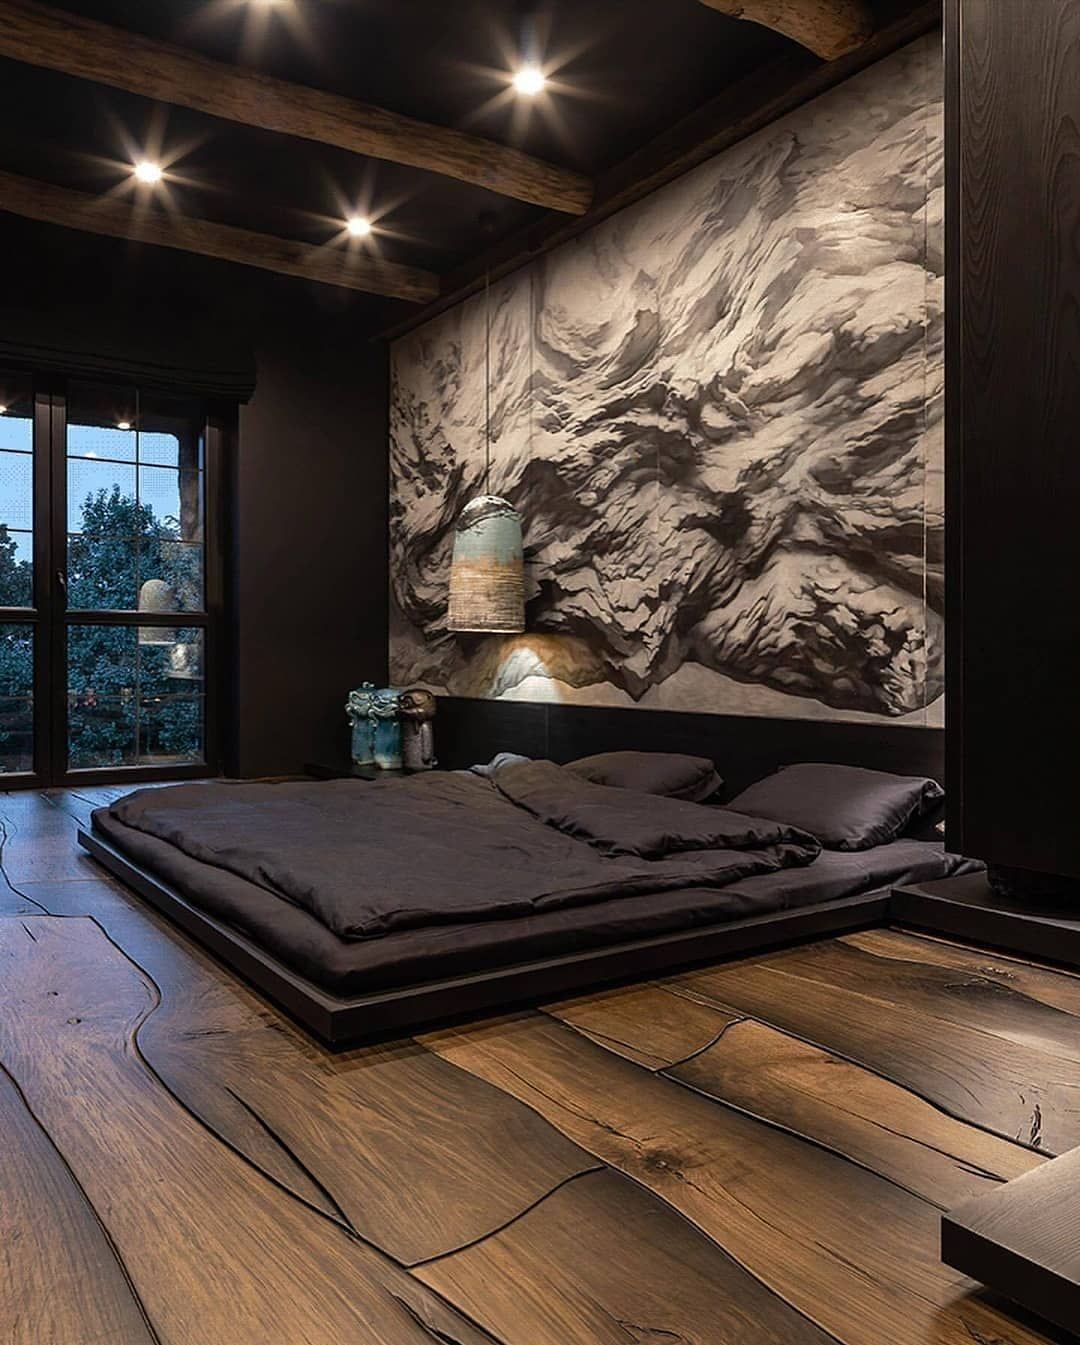 233 Otmetok Nravitsya 3 Kommentariev Interior House Decor Interiorofinsta V Instagr In 2020 Amazing Bedroom Designs Unique Bedroom Design Luxurious Bedrooms